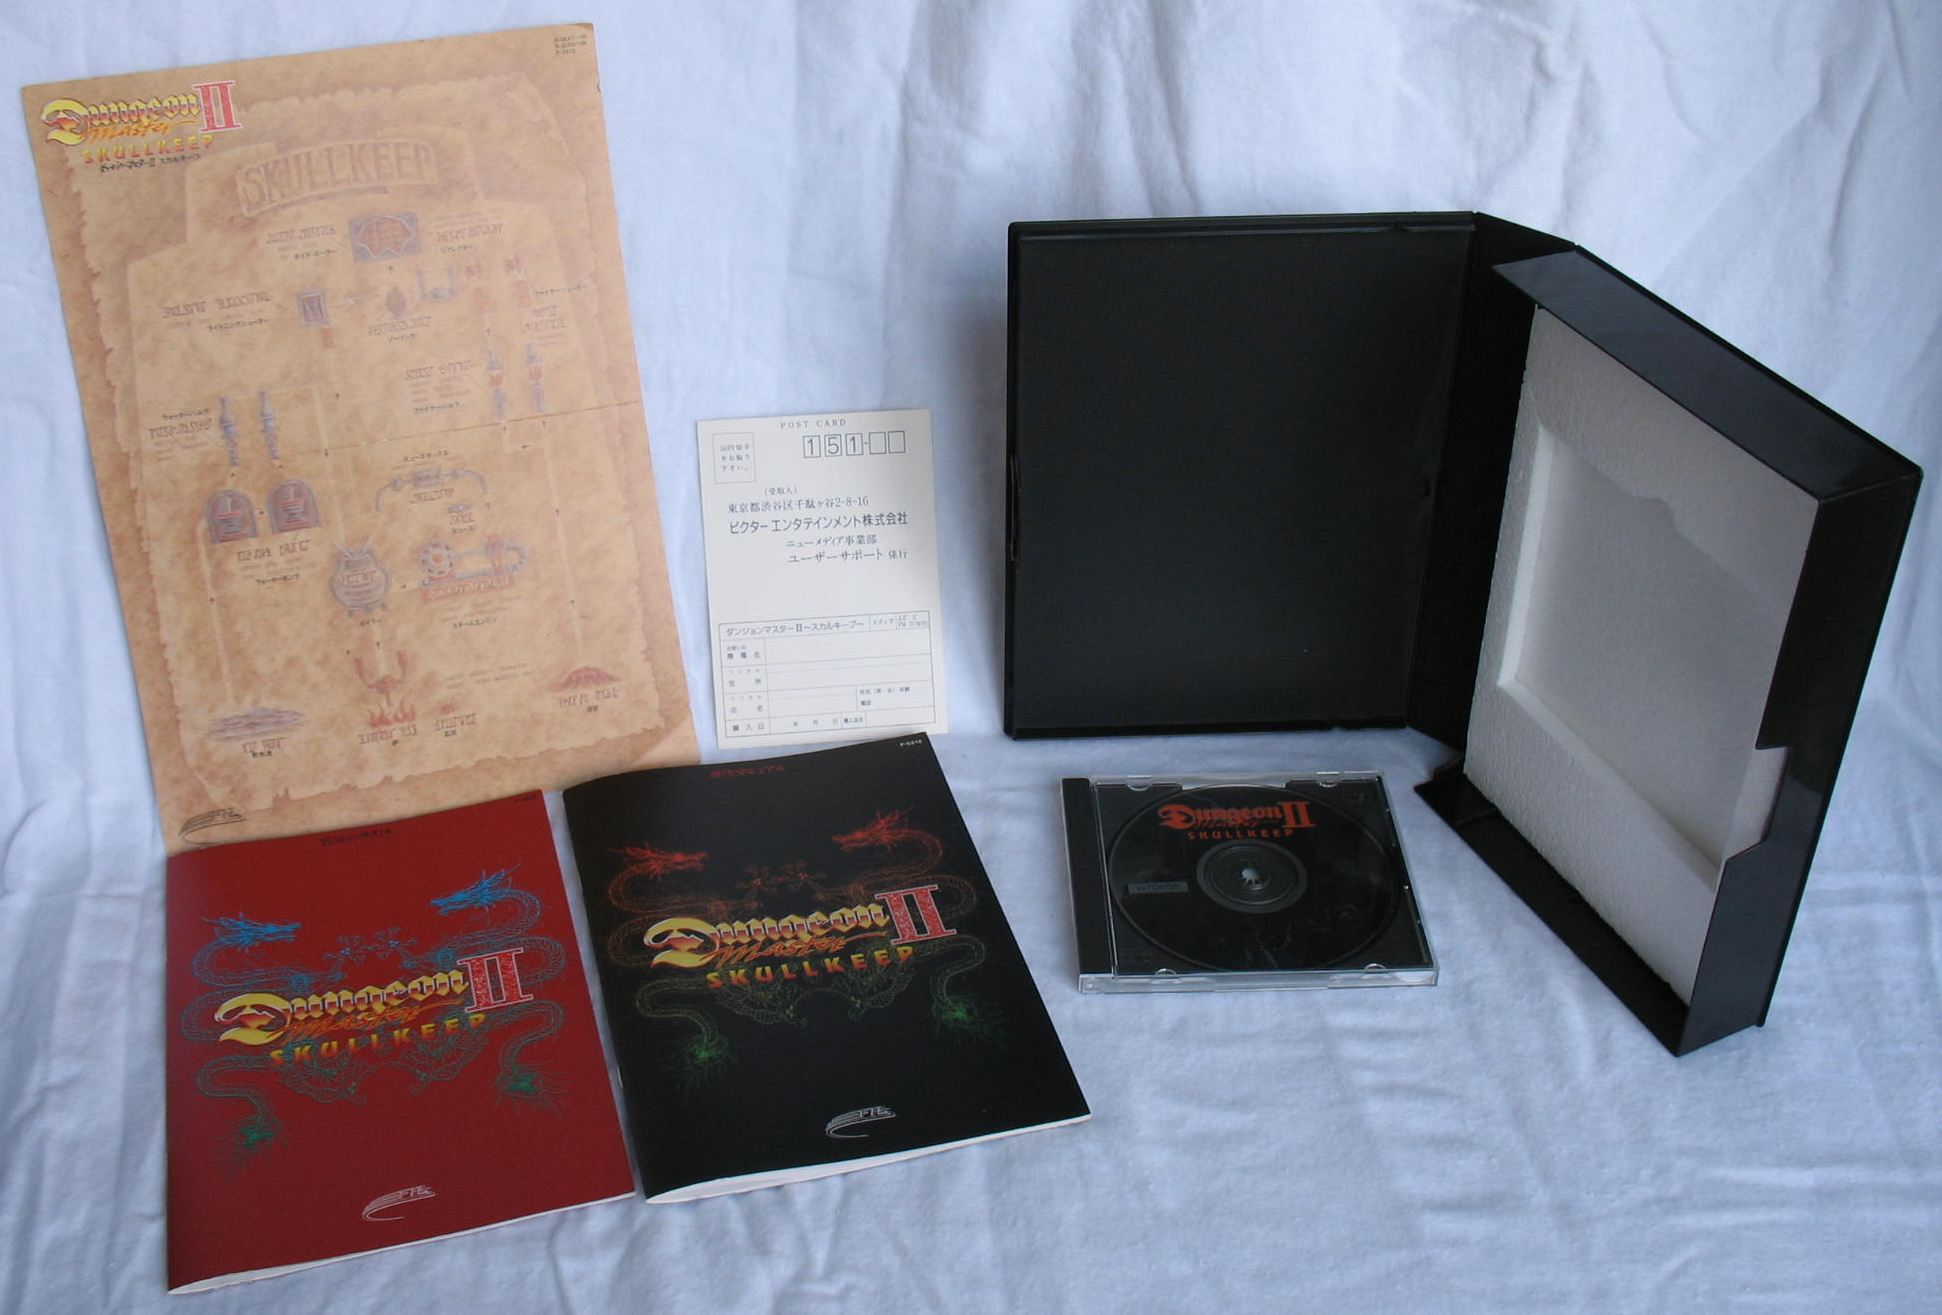 Game - Dungeon Master II - JP - FM Towns - All - Overview - Photo